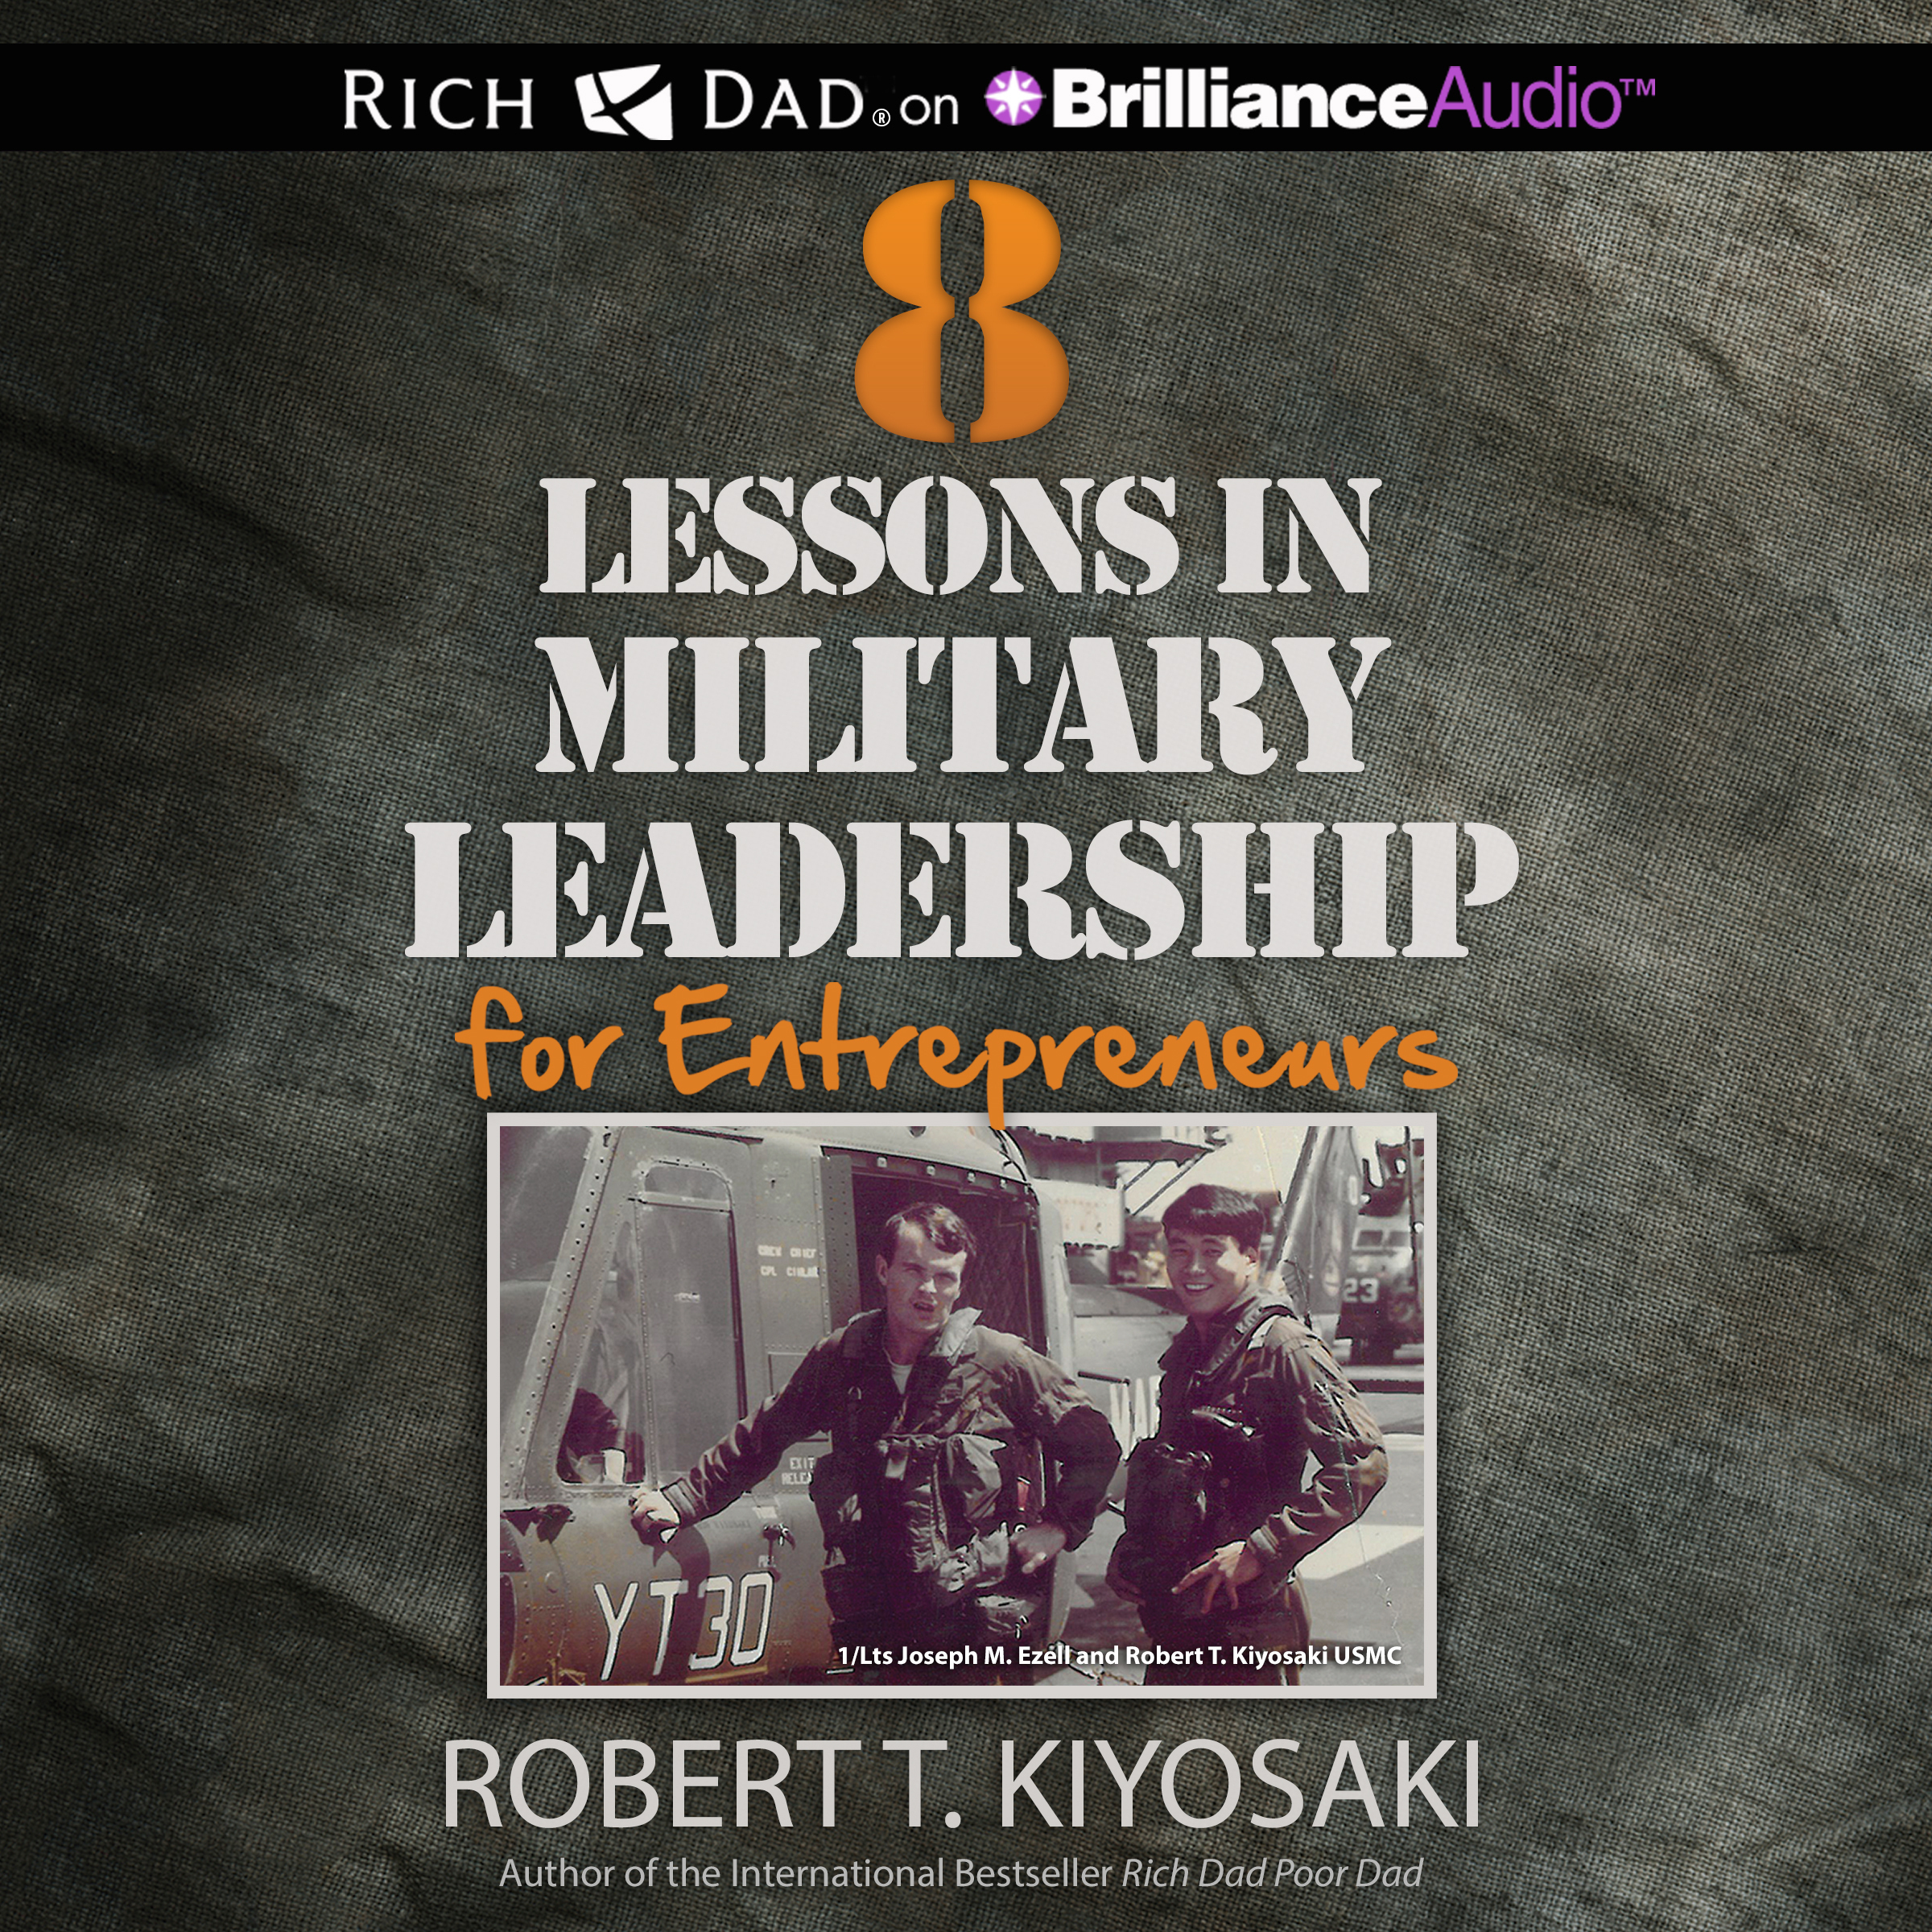 Printable 8 Lessons in Military Leadership for Entrepreneurs Audiobook Cover Art